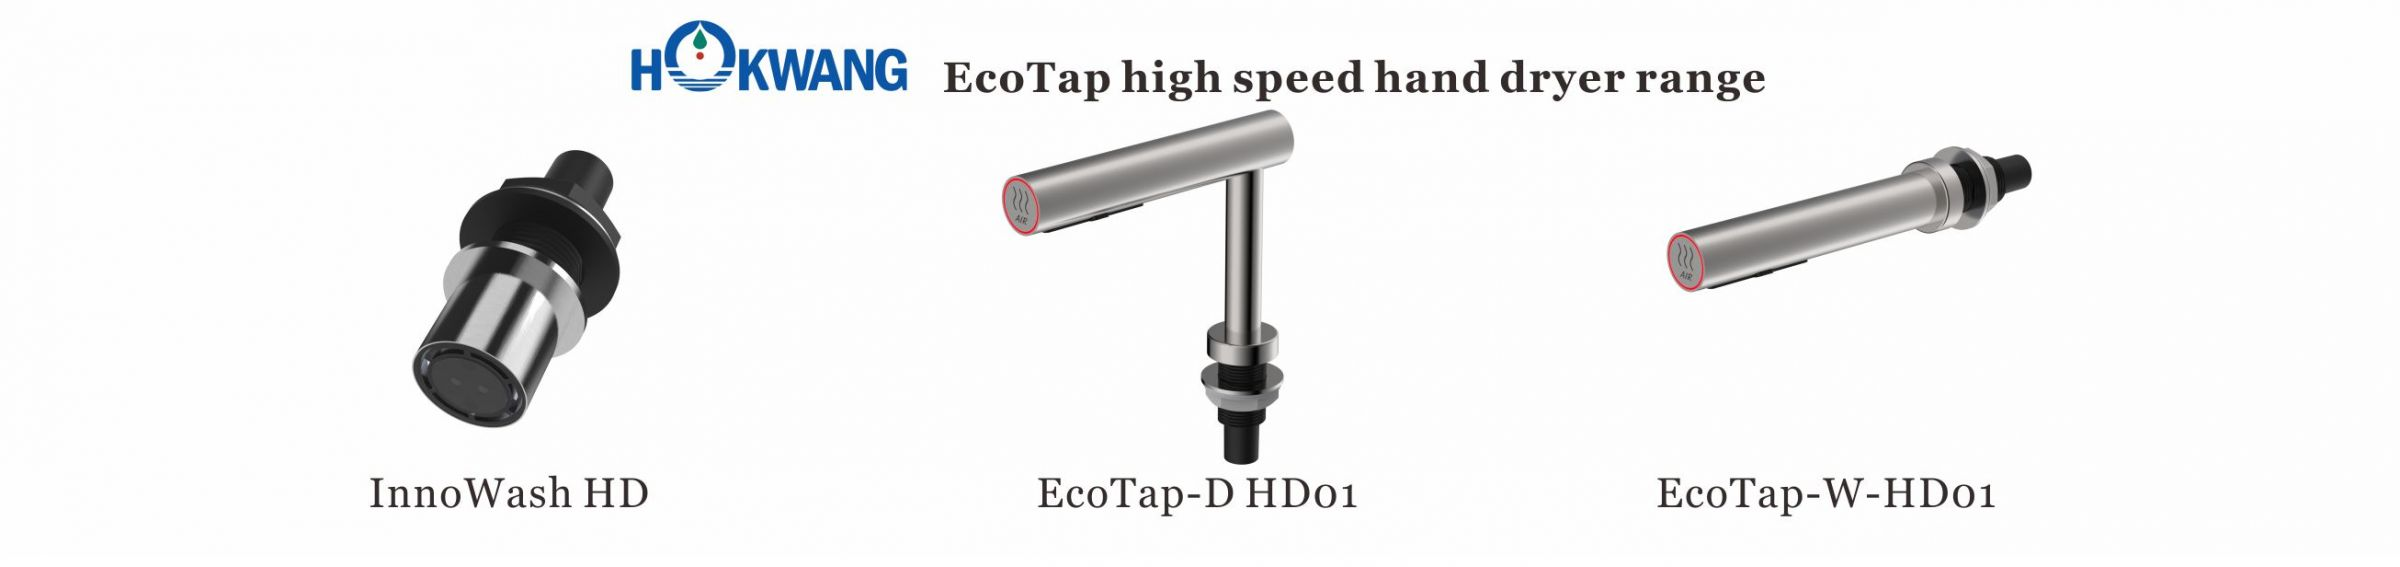 EcoTap High Speed Hand Dryer